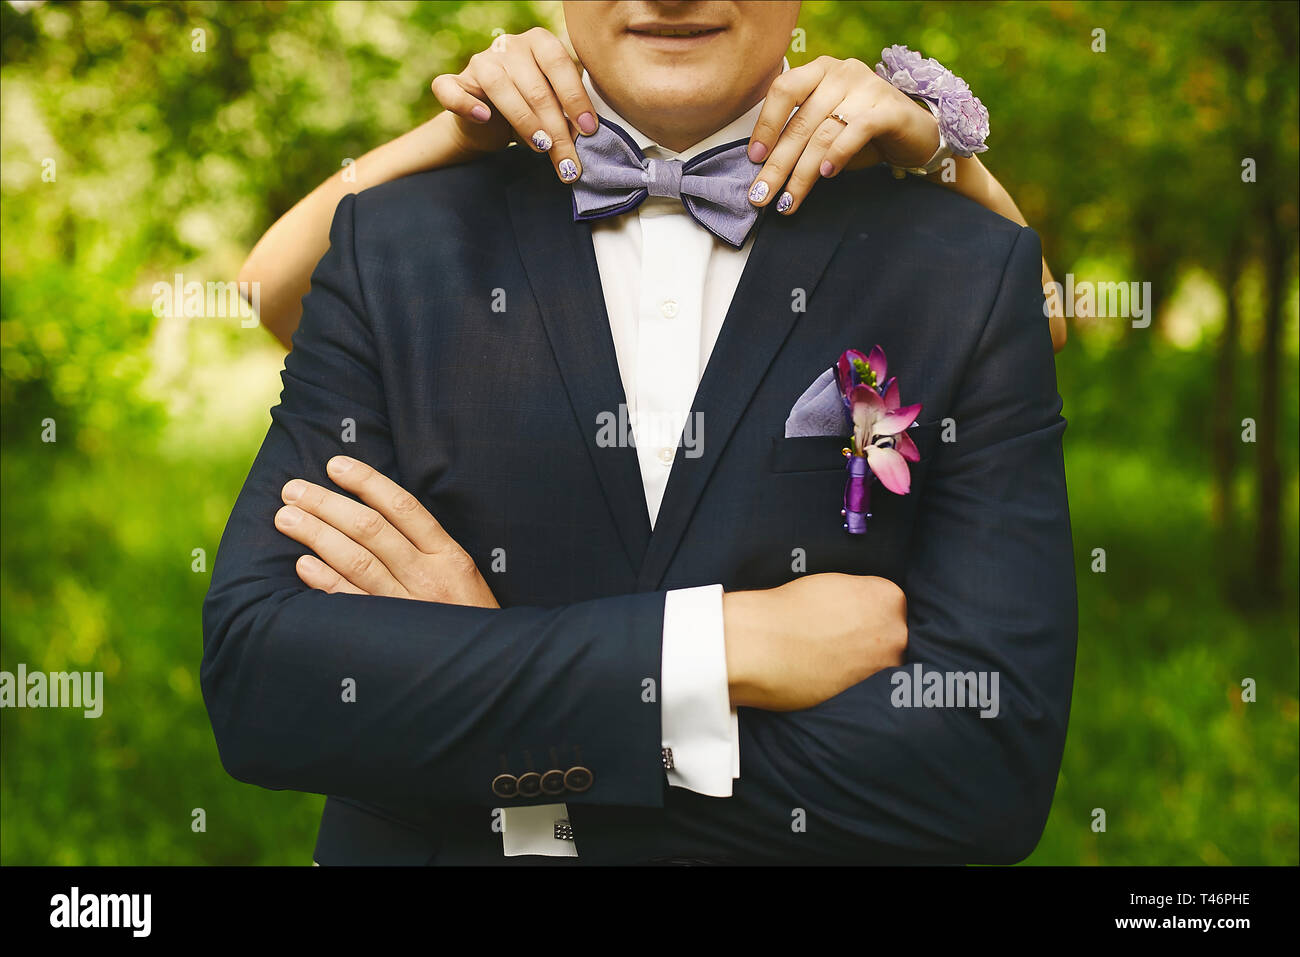 Female hands with fashionable manicure adjusting trendy bowtie on the neck of a young handsome man in a wedding suit with boutonniere - Stock Image